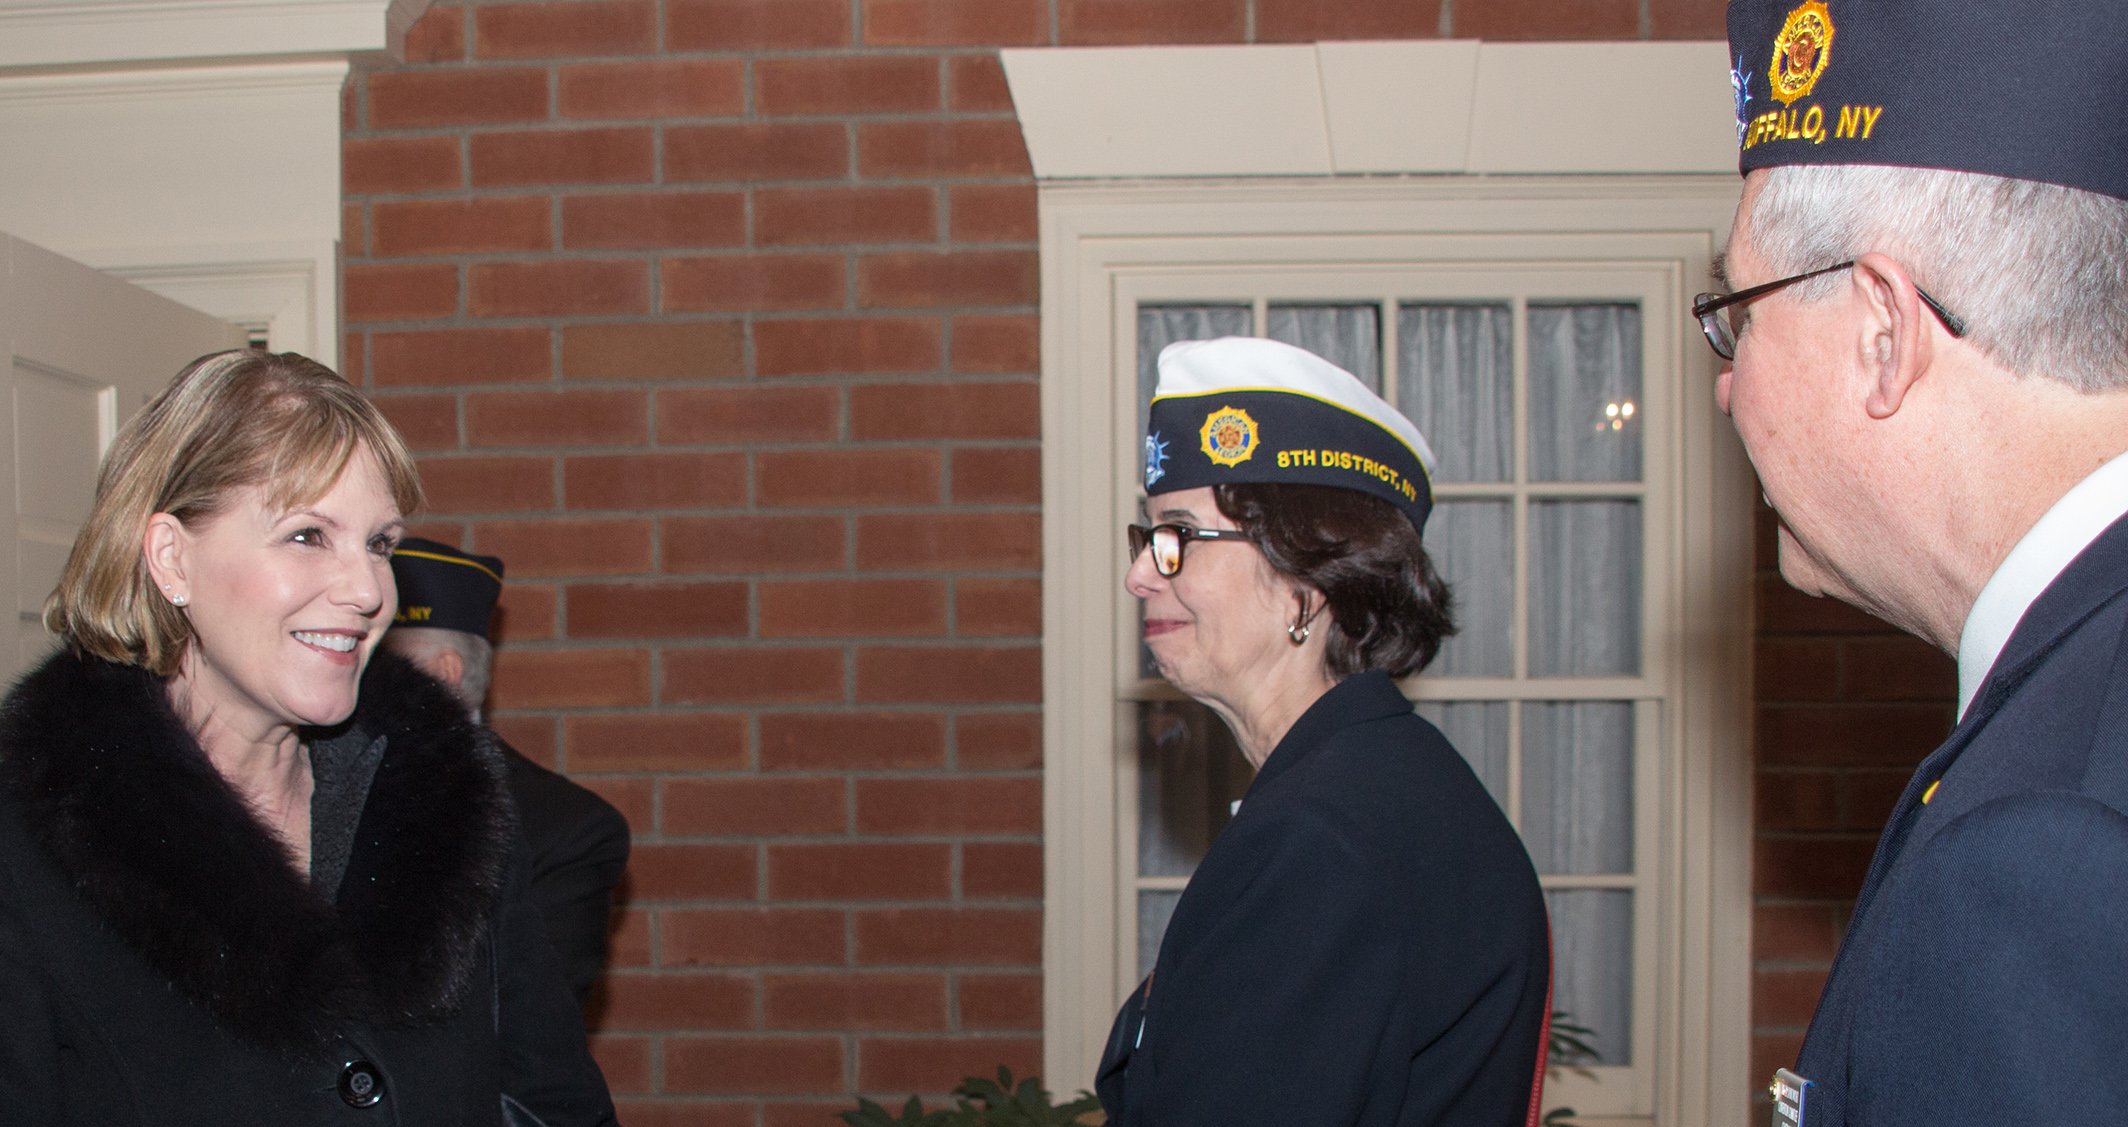 Sen. Catharine Young chats with New York American Legion Press Association Executive Director Lynda Pixley and Erie County Adjutant James Bojanowski on their way into the legislative breakfast.